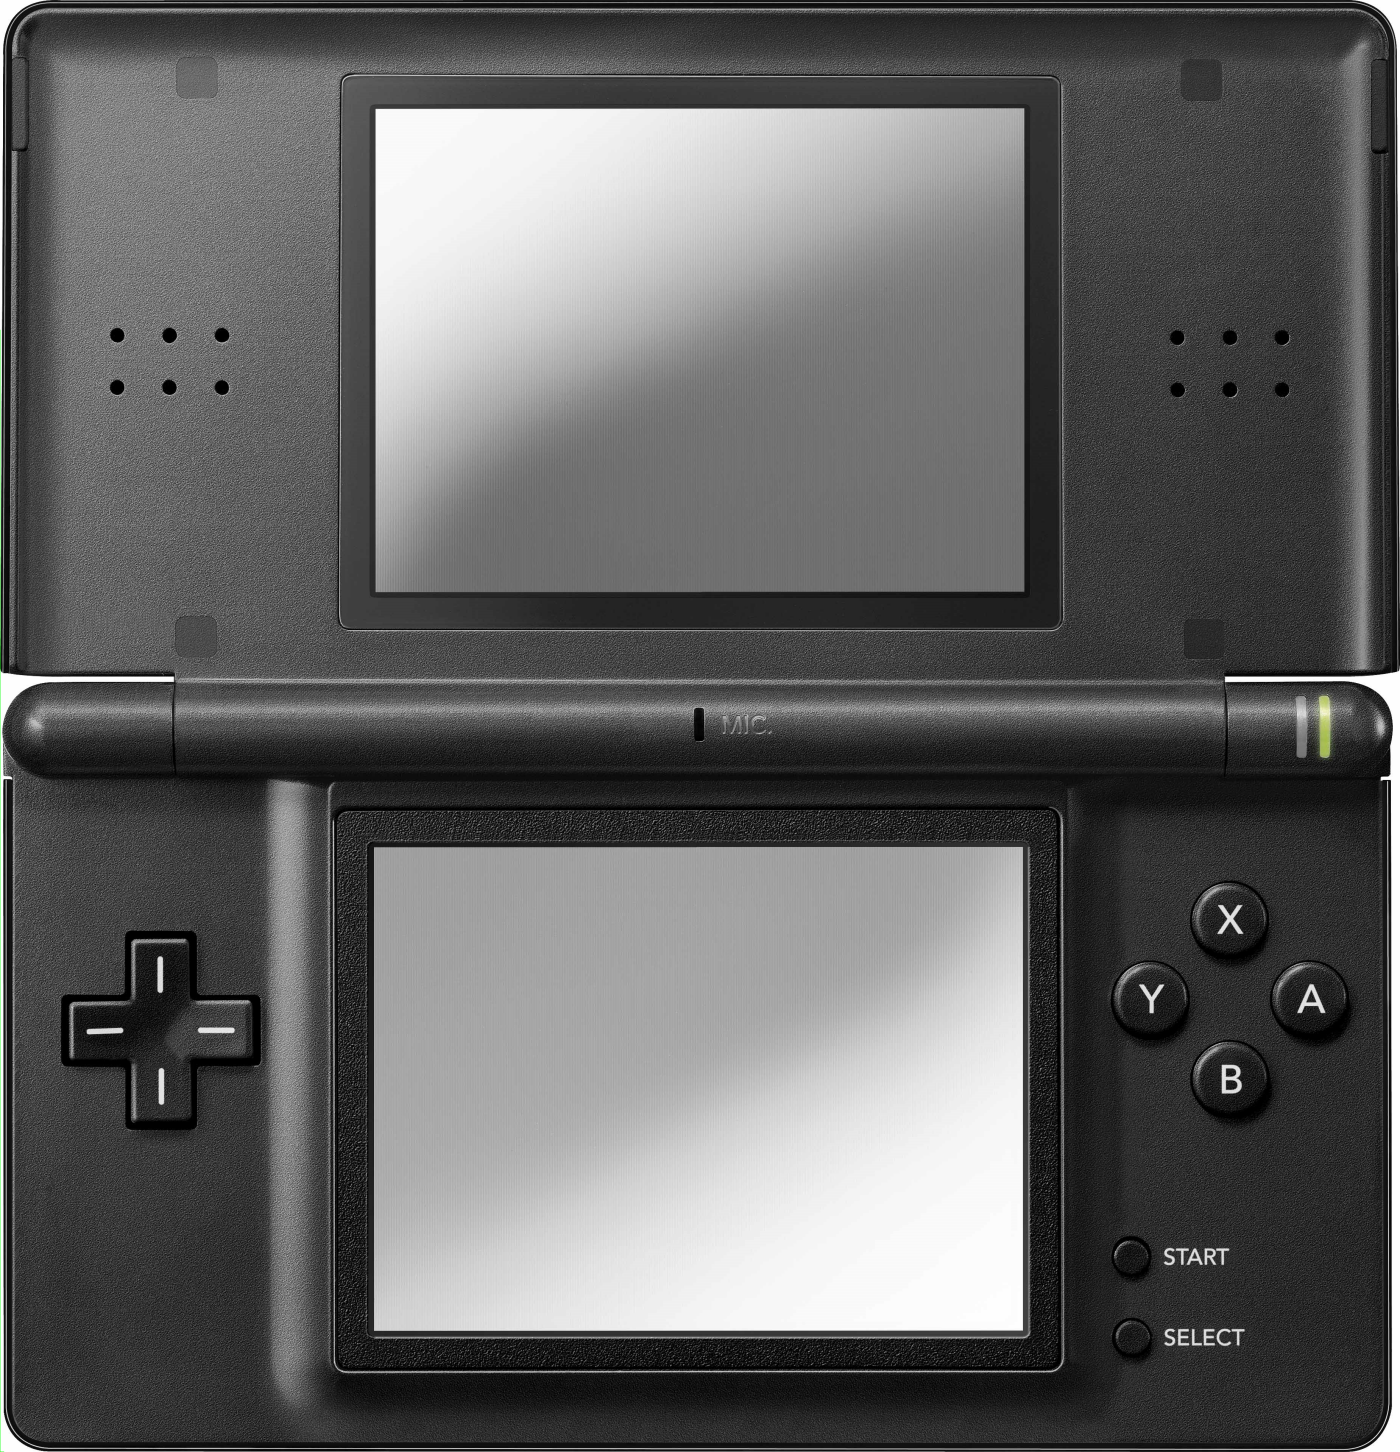 nintendo ds lite the nintendo wiki wii nintendo ds and all things nintendo. Black Bedroom Furniture Sets. Home Design Ideas